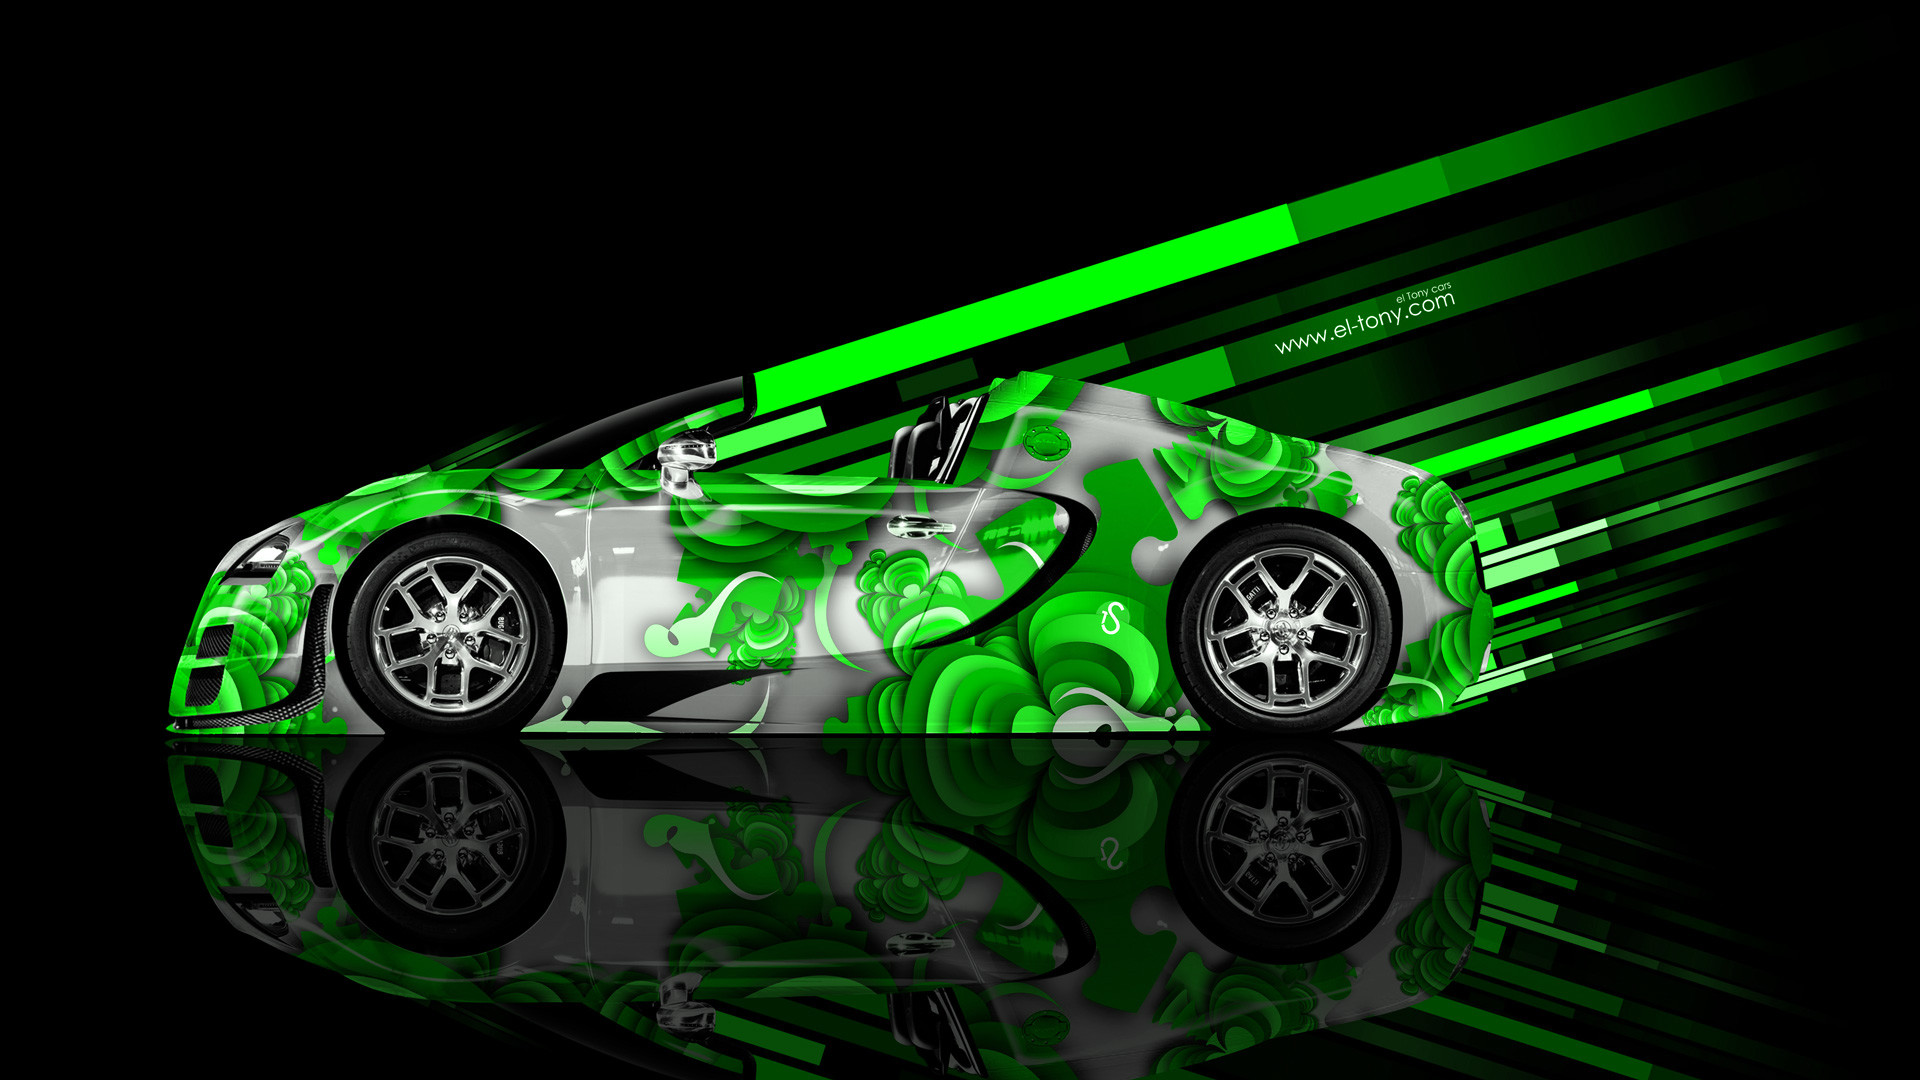 Green Bugatti Veyron Wallpaper Bugatti Veyron Neon Blue 1920x1080 Wallpaper Teahub Io